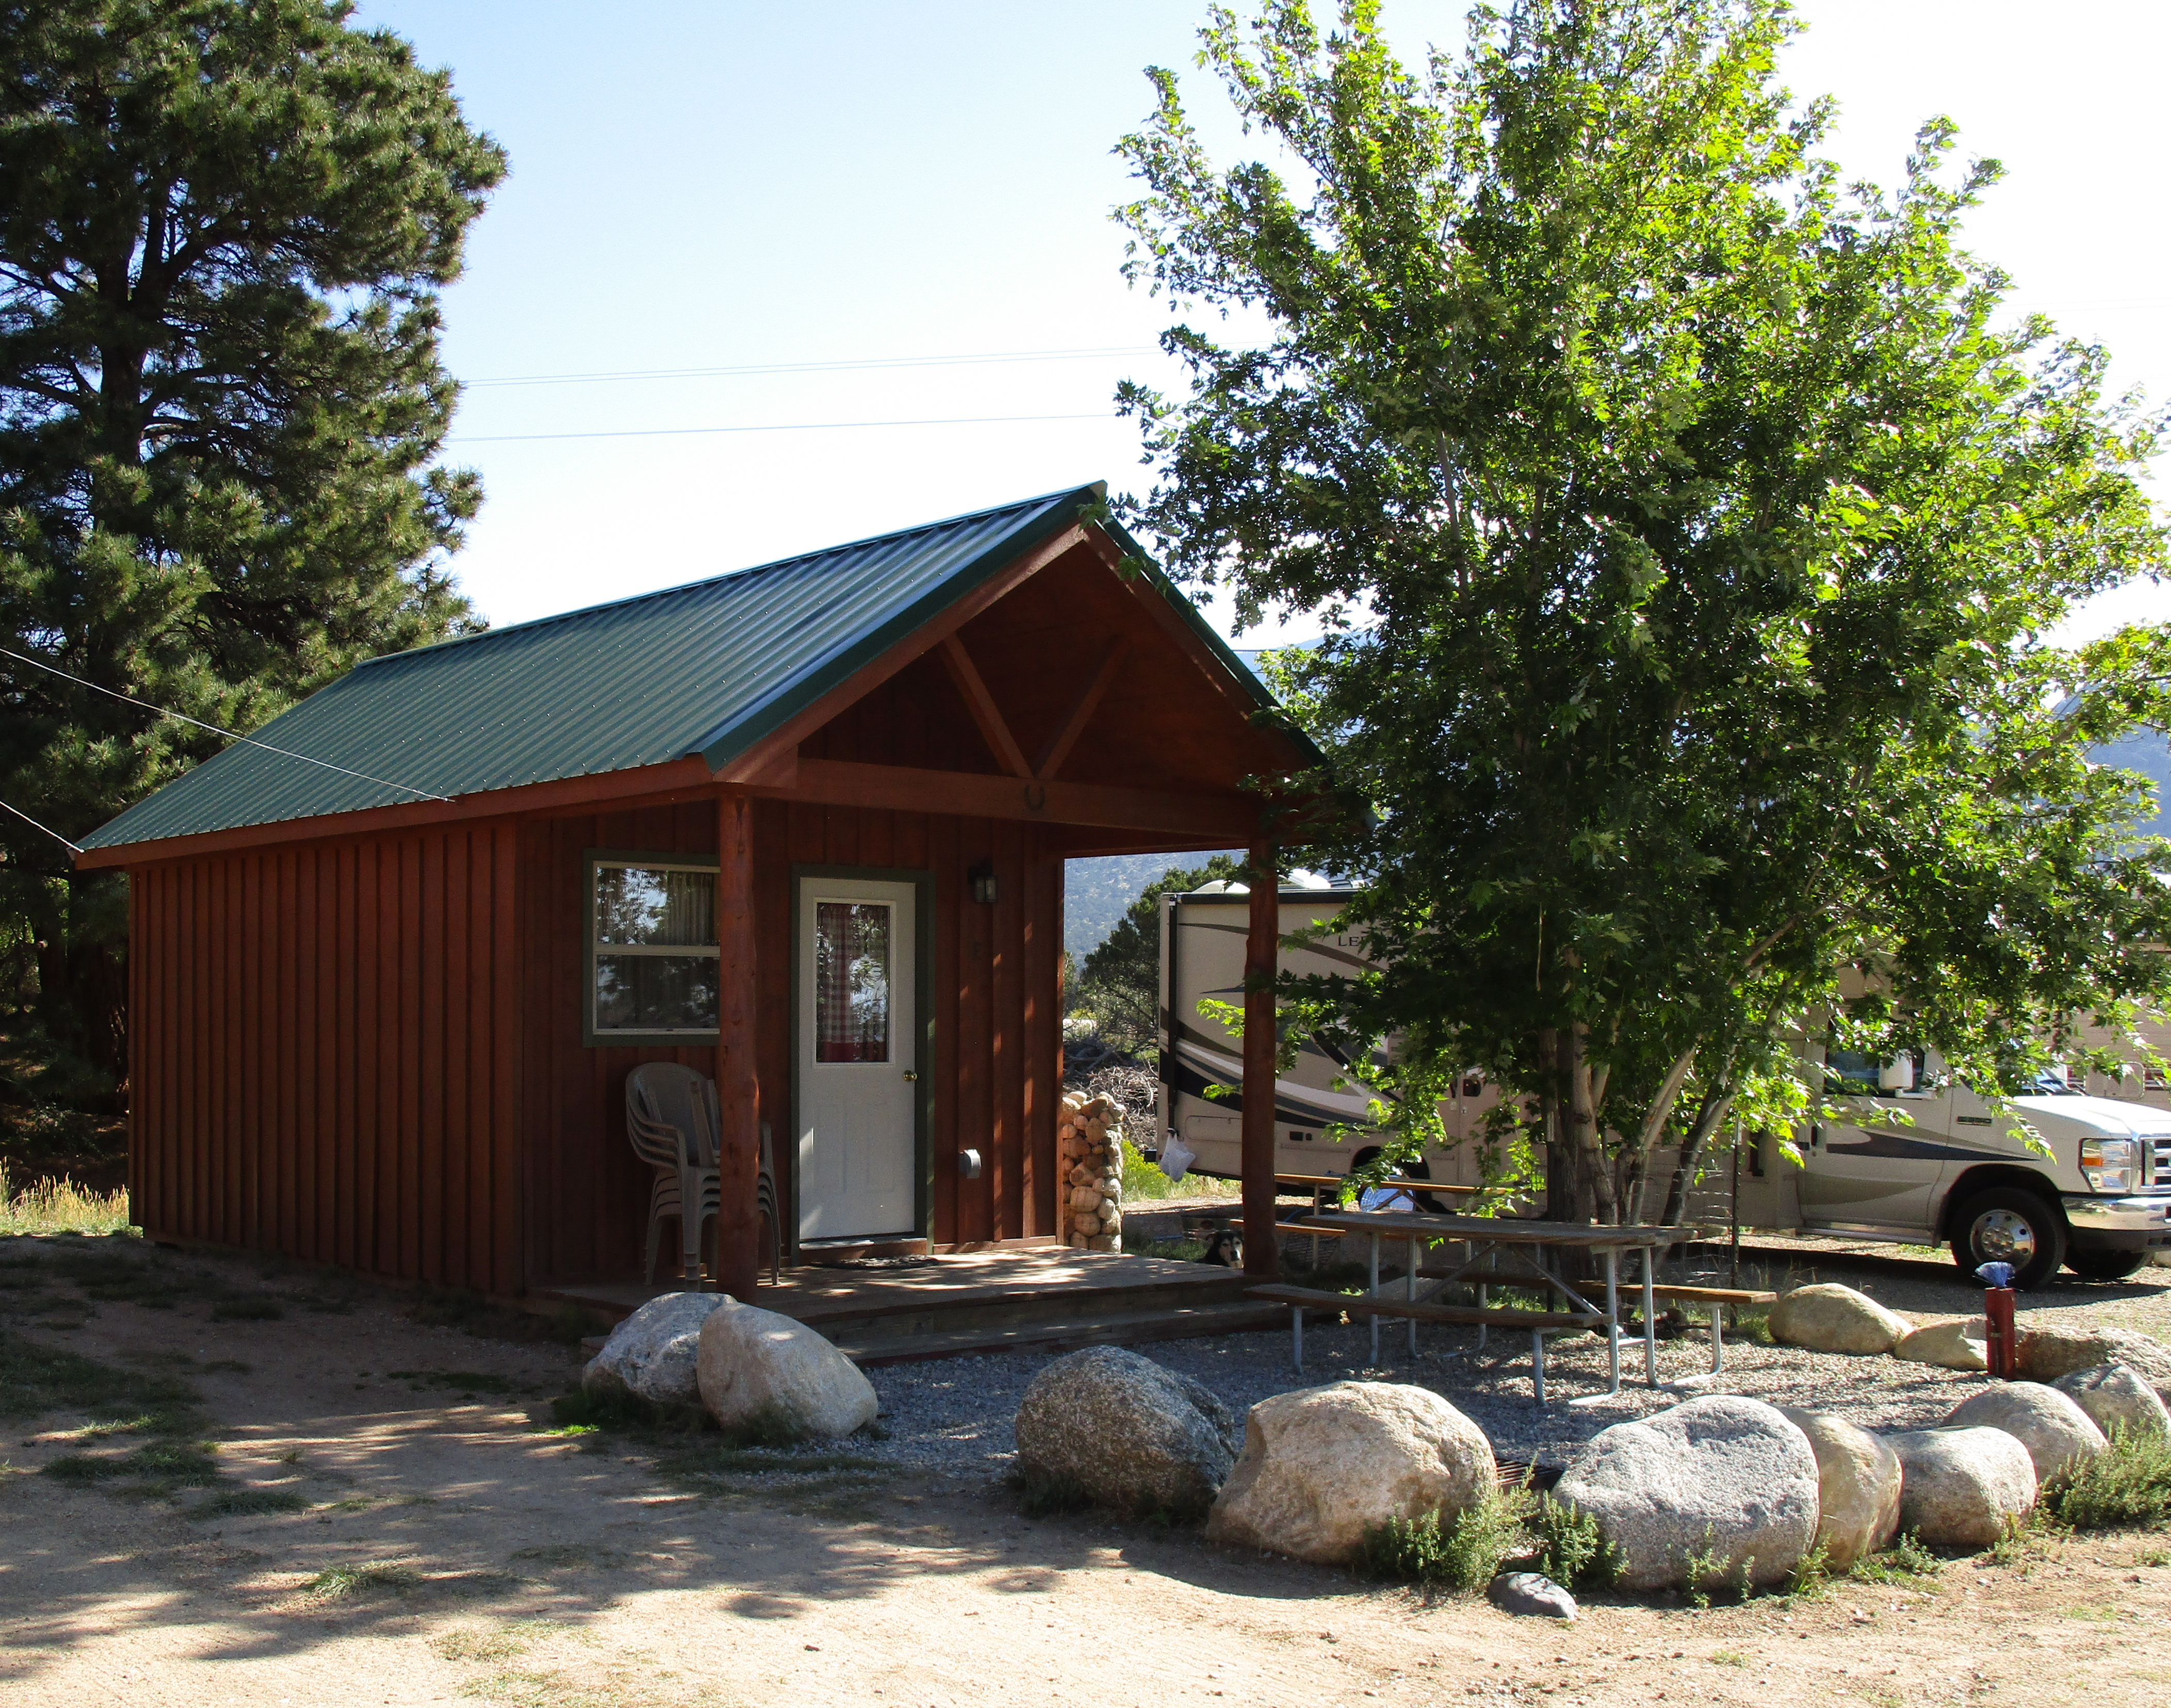 rental amberwood rentals img aw vacation mountain colorado rocky affordable park countrycabins cabins html near national